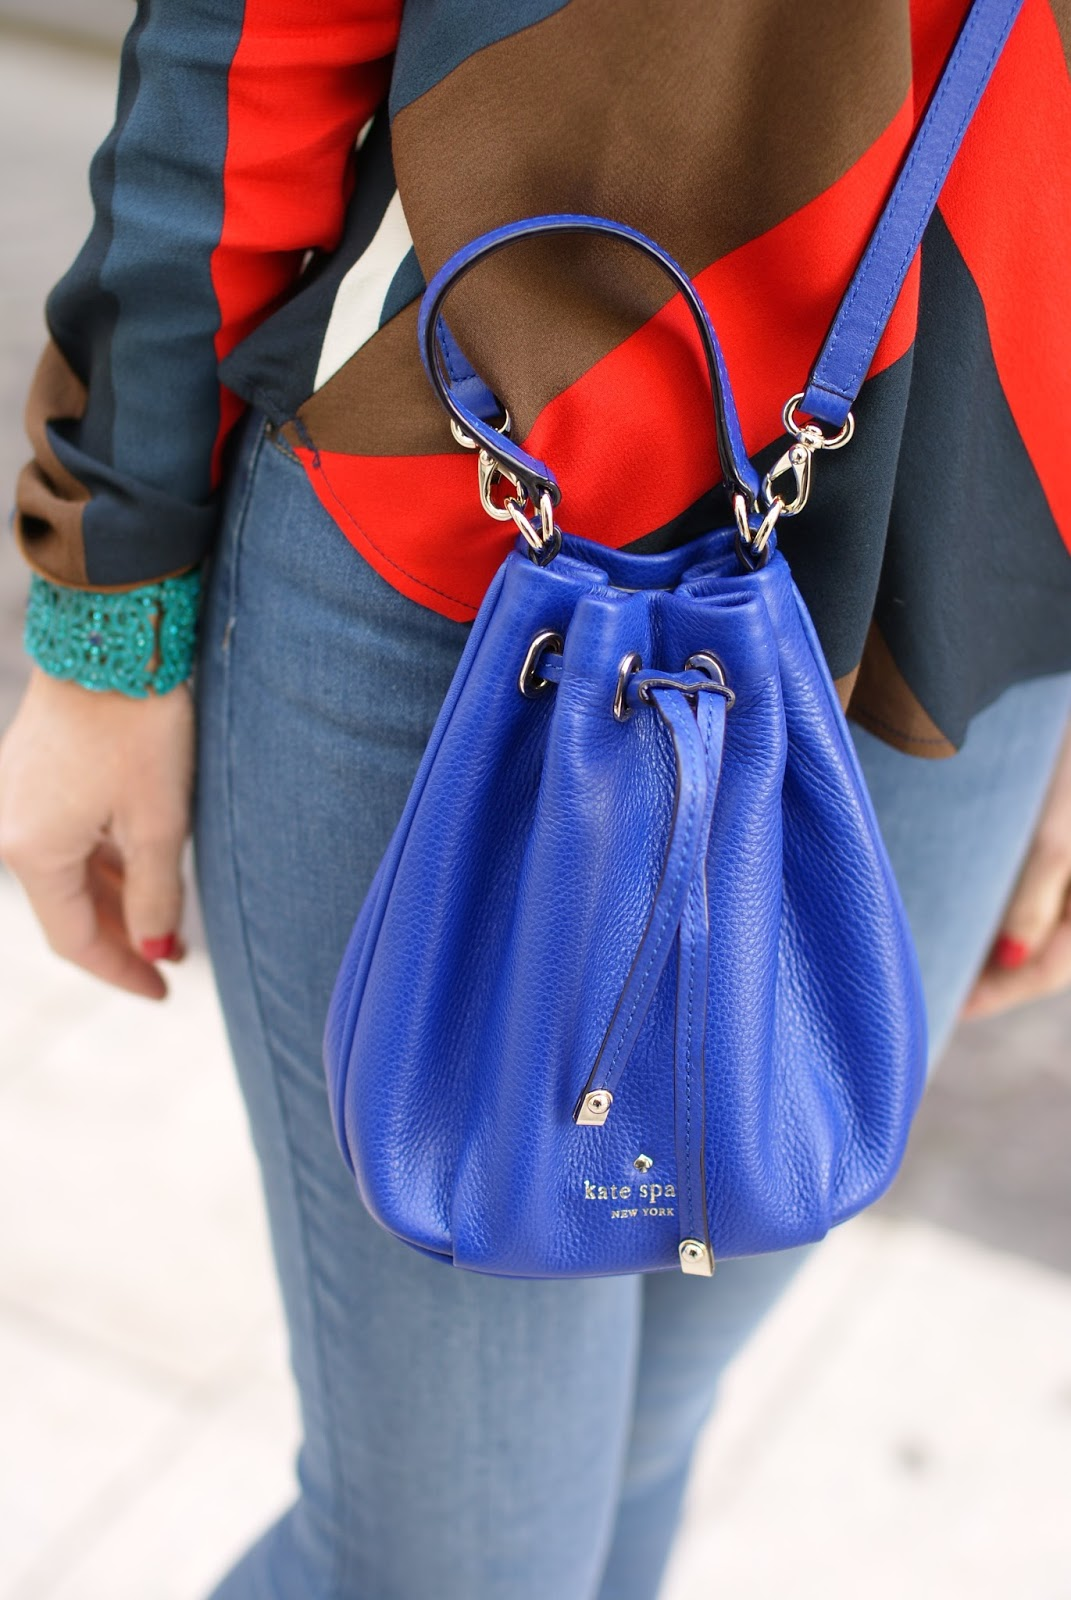 royal blue Kate Spade New York Wyatt mini bucket bag on Fashion and Cookies fashion blog, fashion blogger style